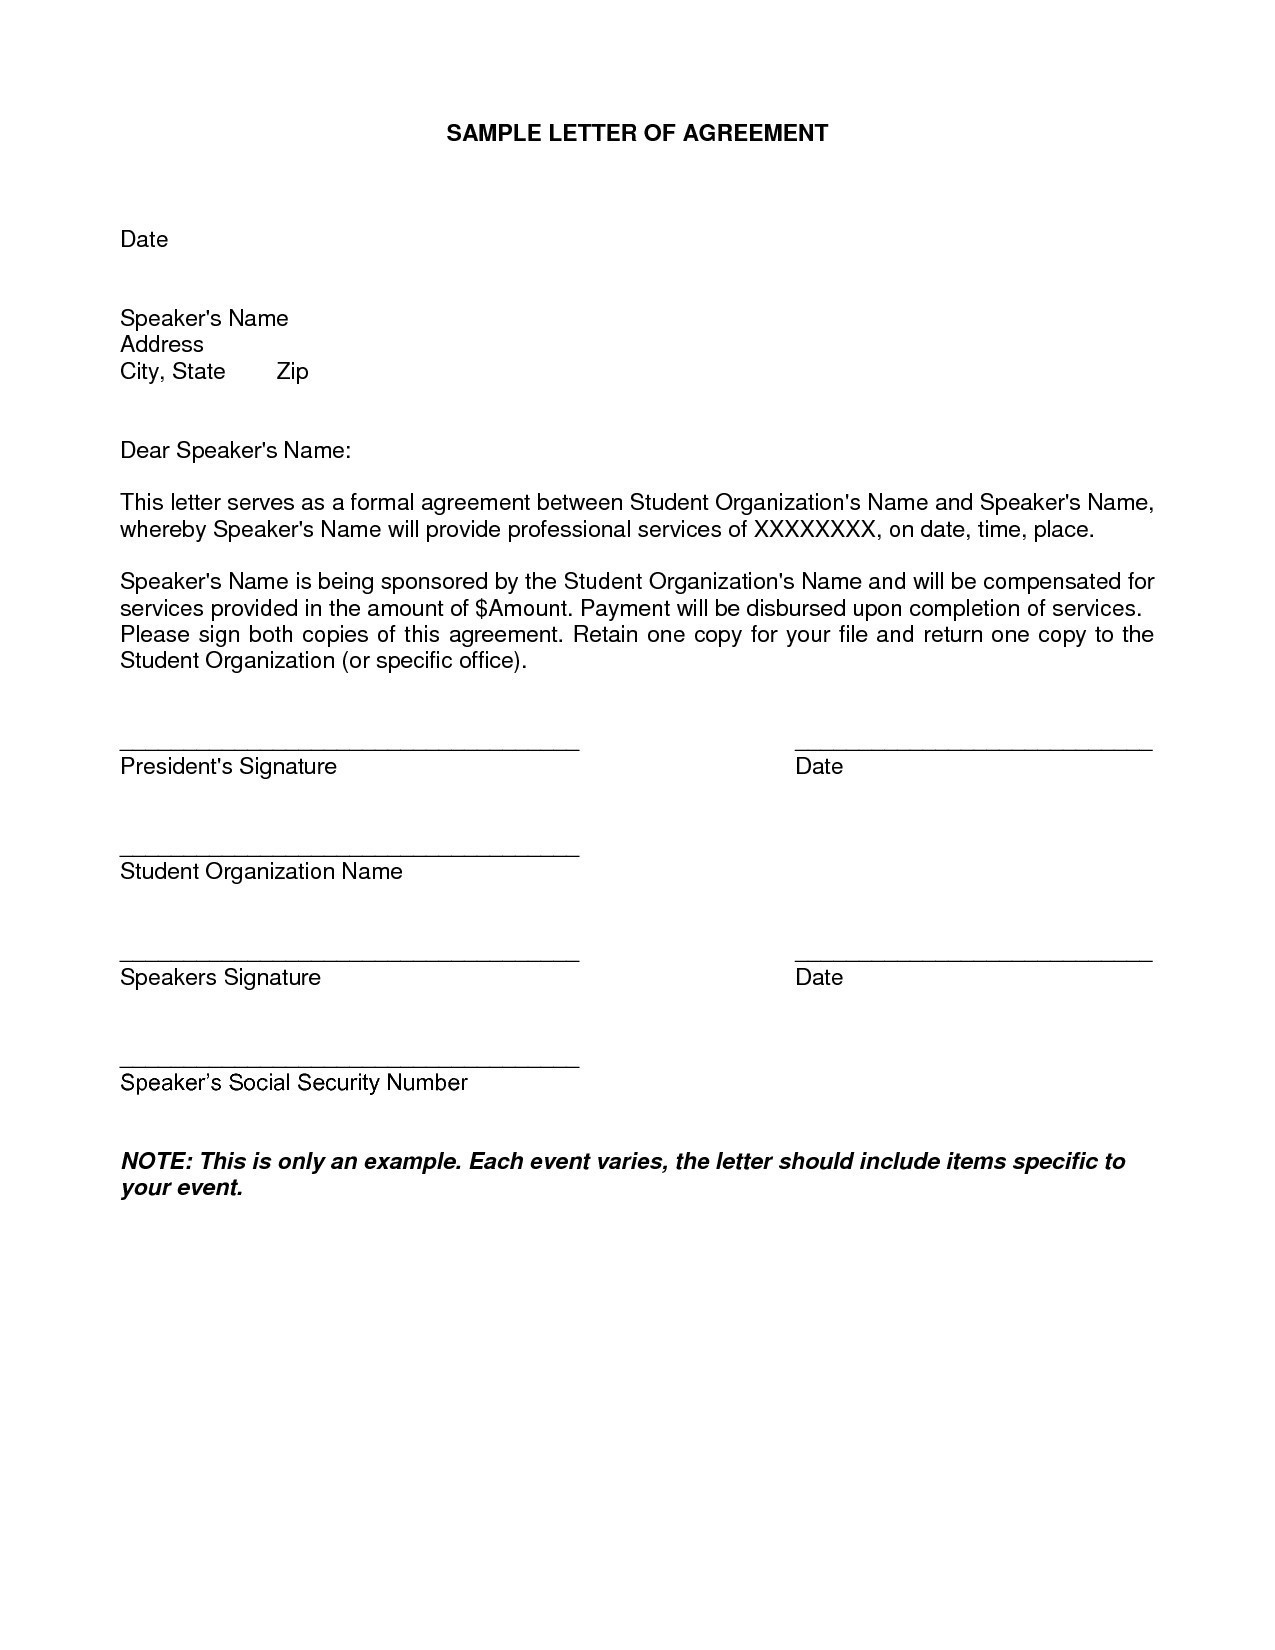 Aml Comfort Letter Template - Awesome Irs Proposed Changes Letter